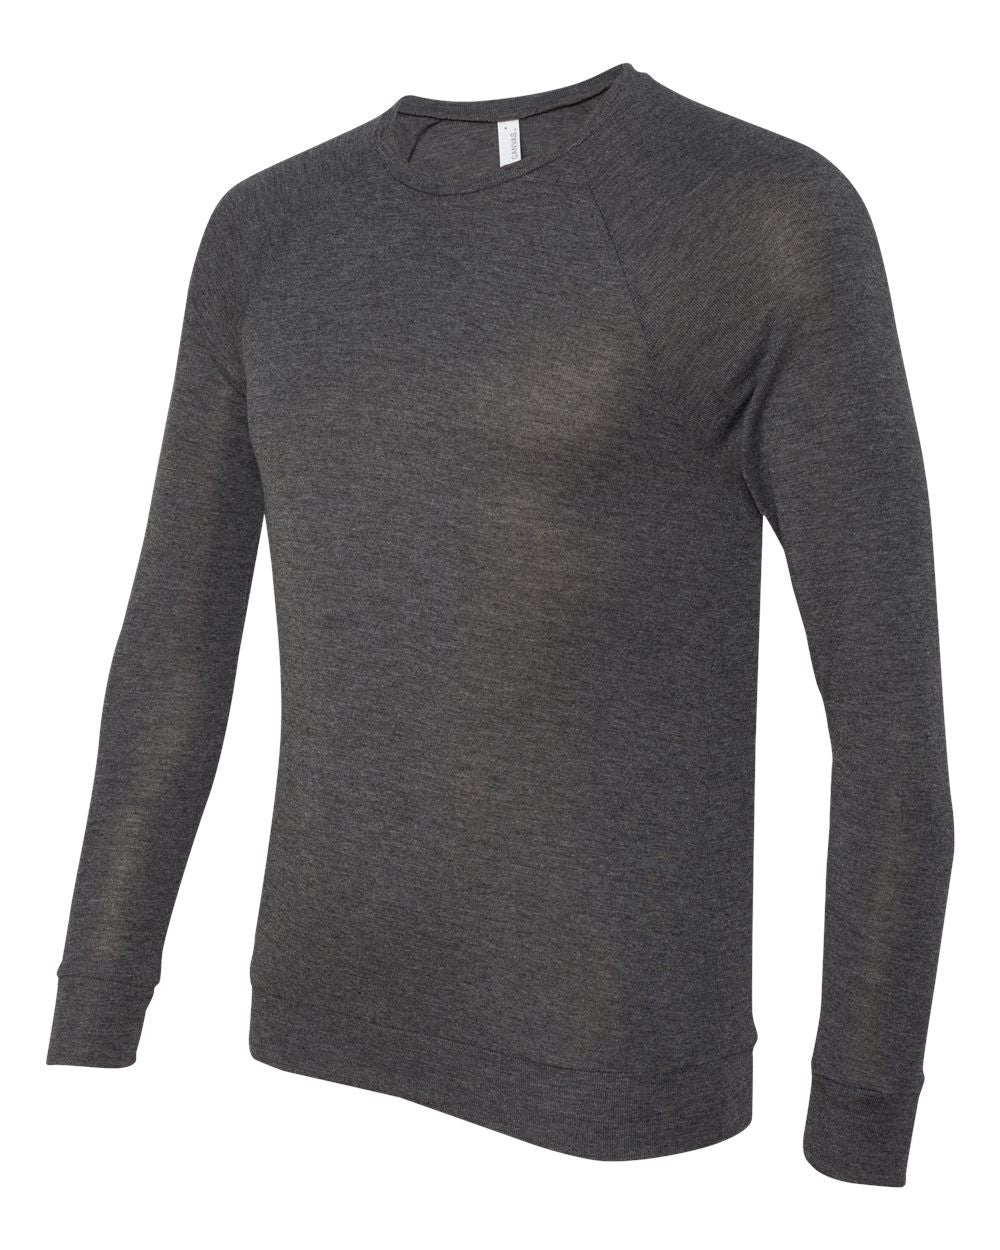 Womens Lightweight Sweater by Belle + Canvas